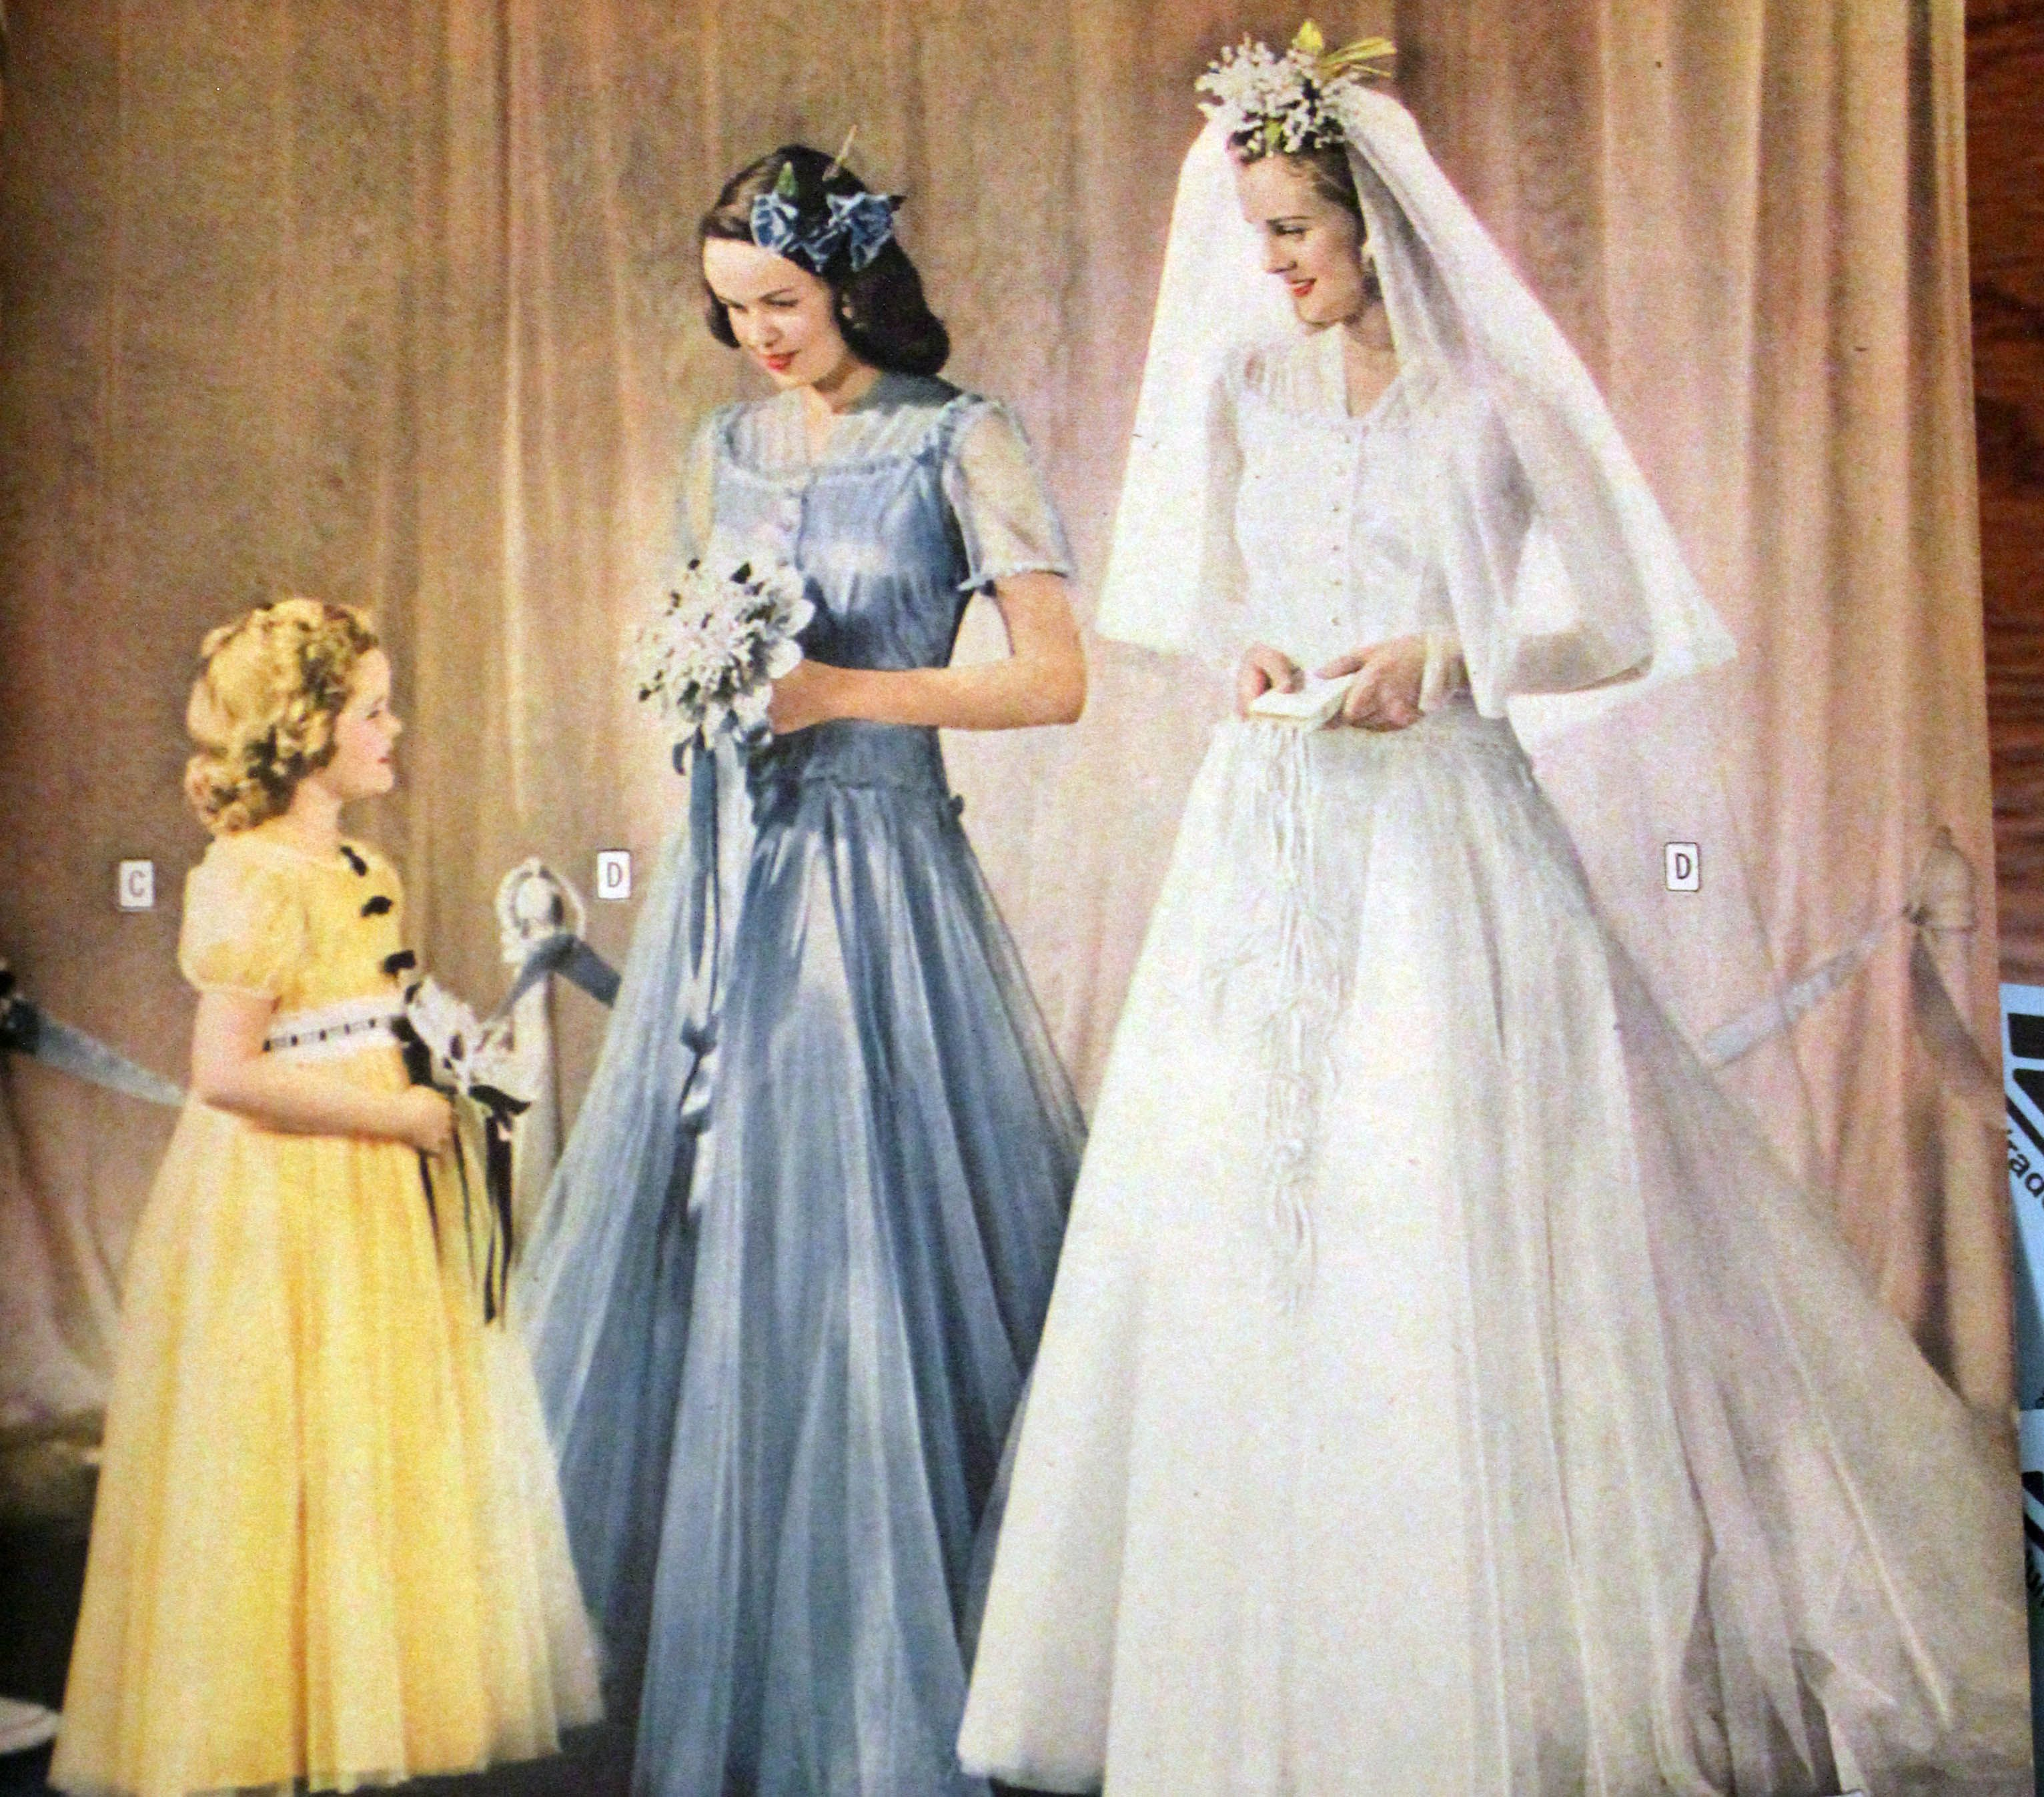 S wedding gowns history of s wedding dresses s